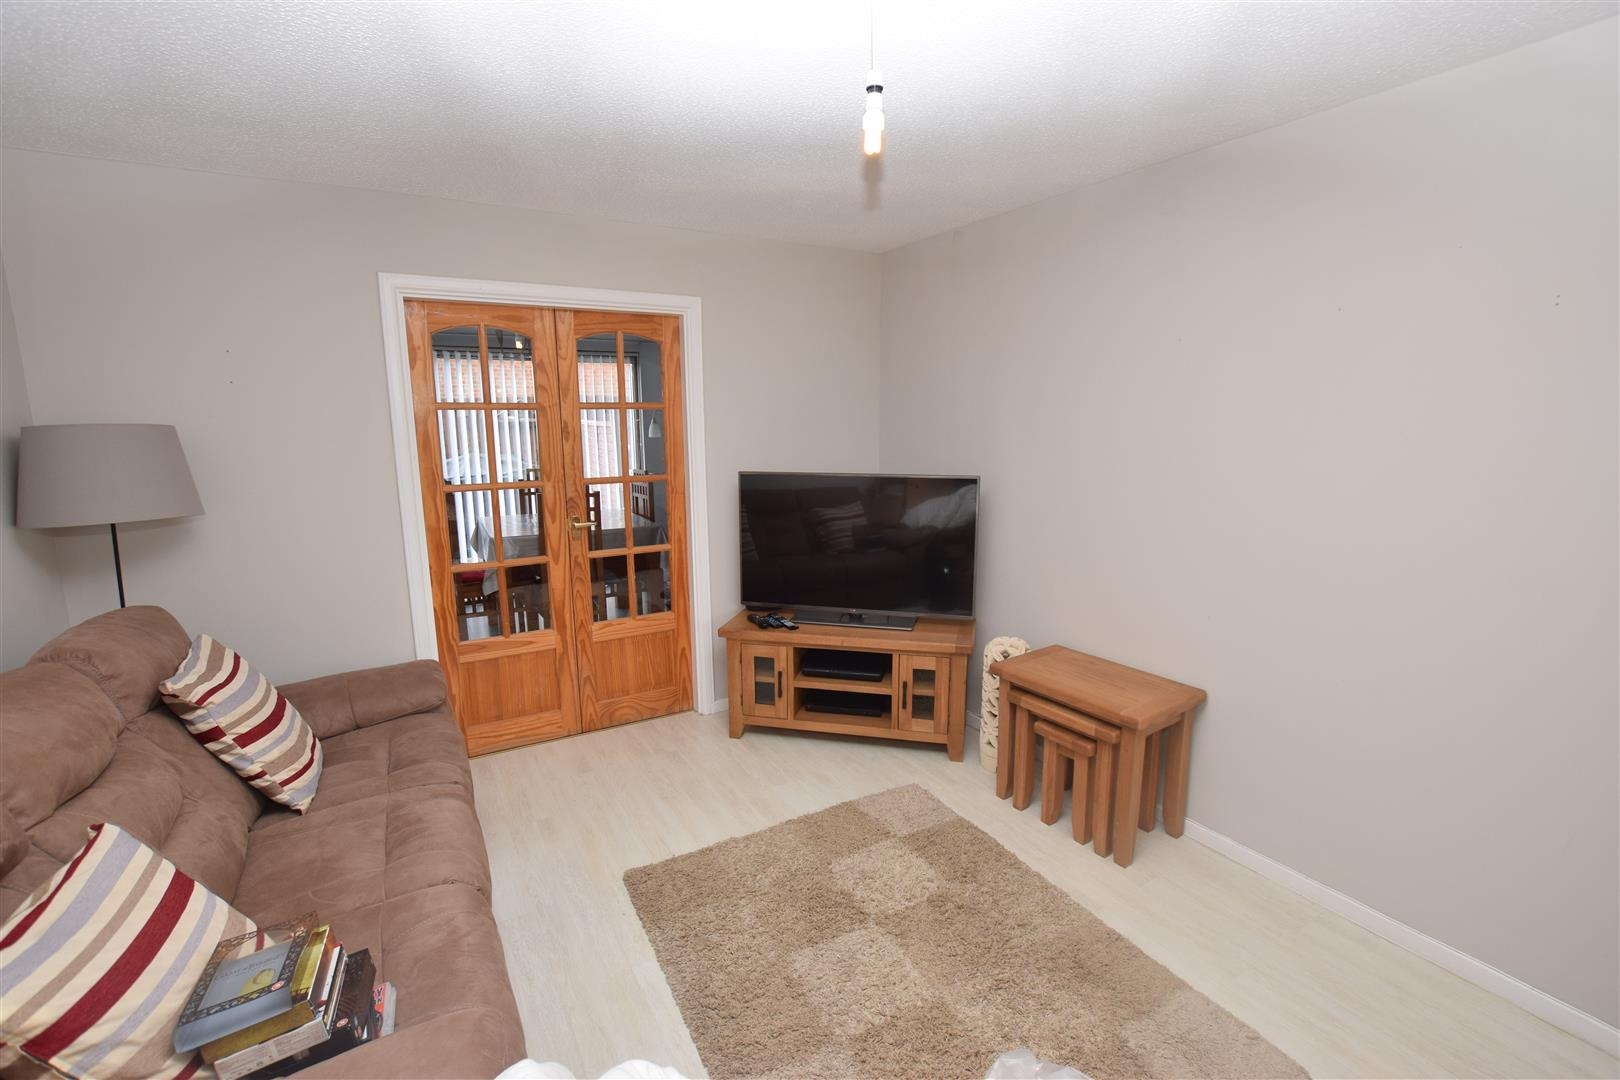 65, Duncansby Way, Perth, Perthshire, PH1 5XF, UK